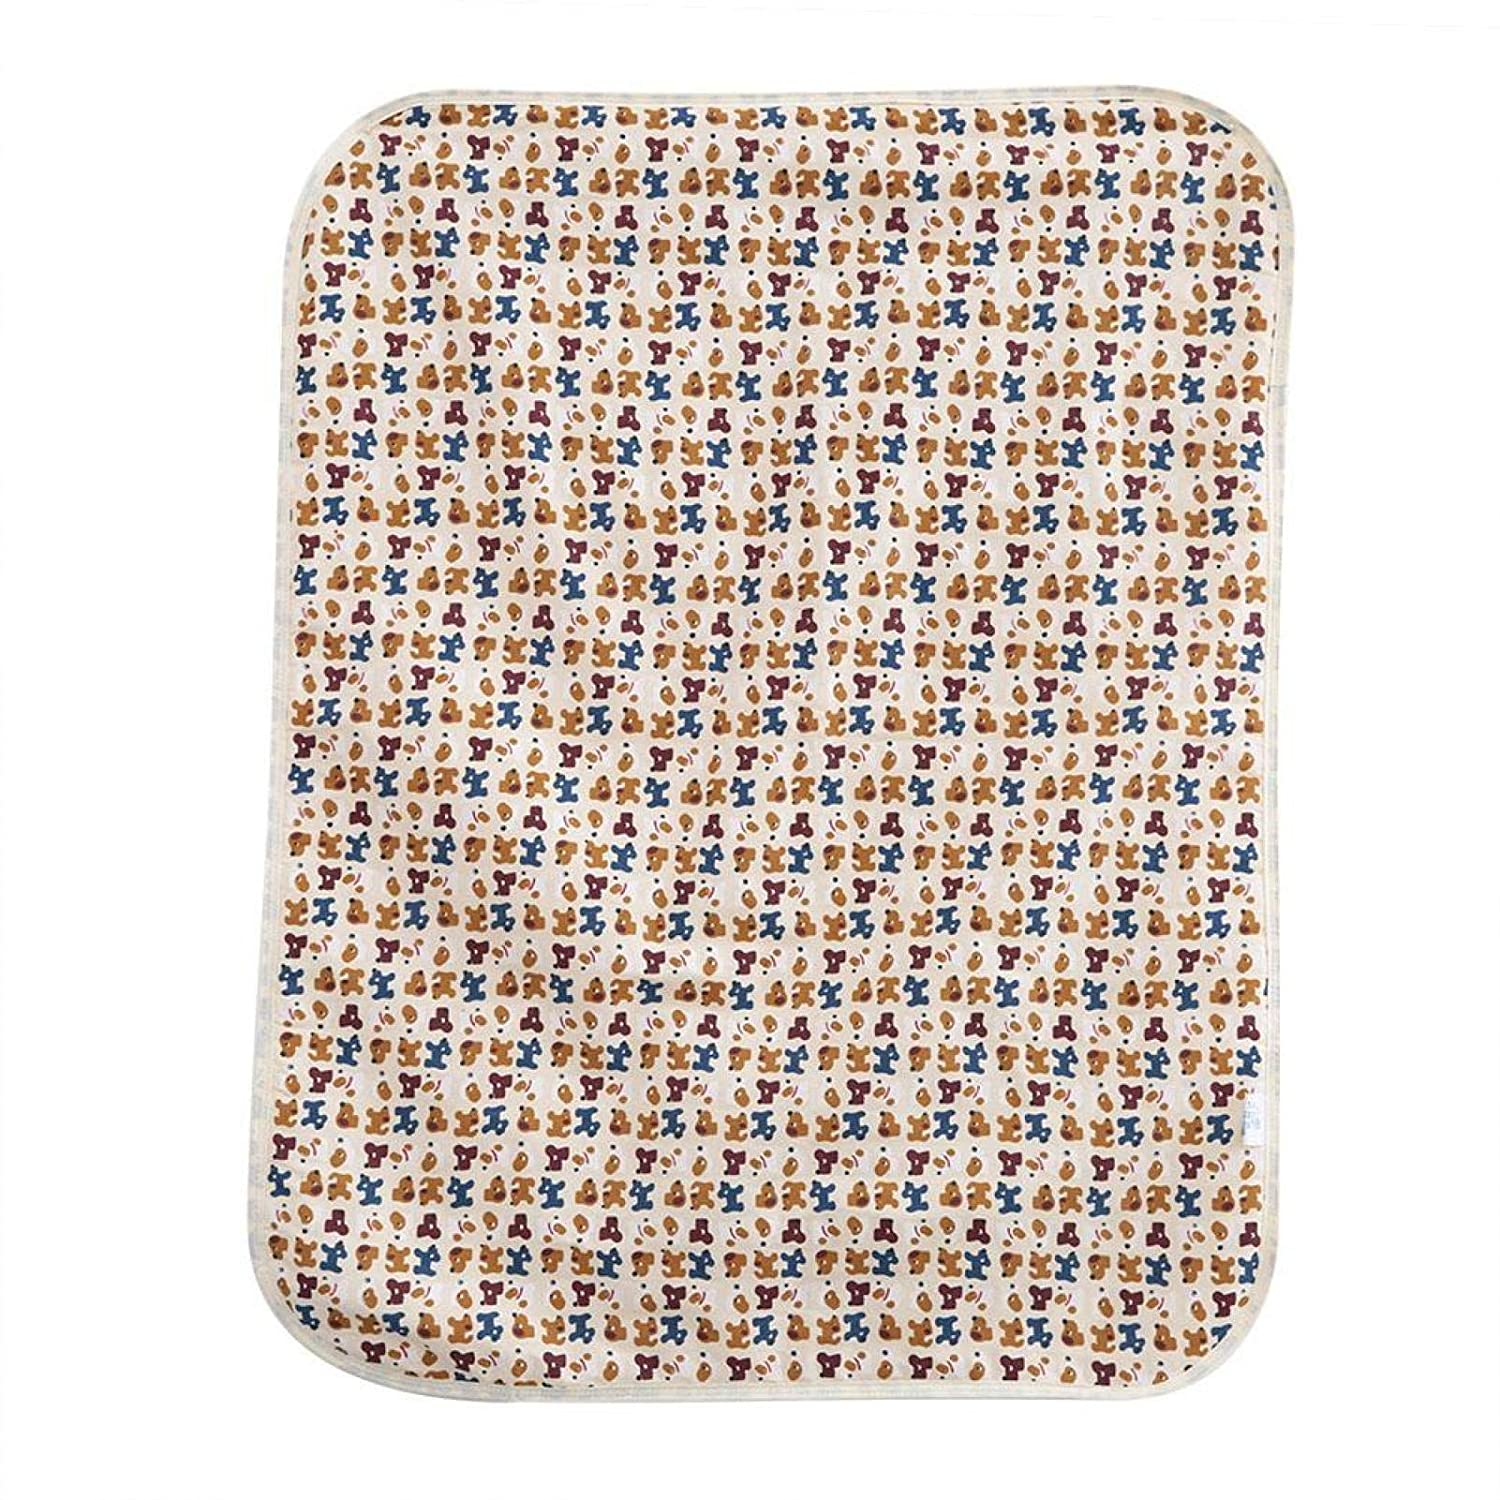 Waterproof and Breathable, Baby Changing Mat, for Newborn Baby, Baby Doll Changing Mat(Coffee Puppy)